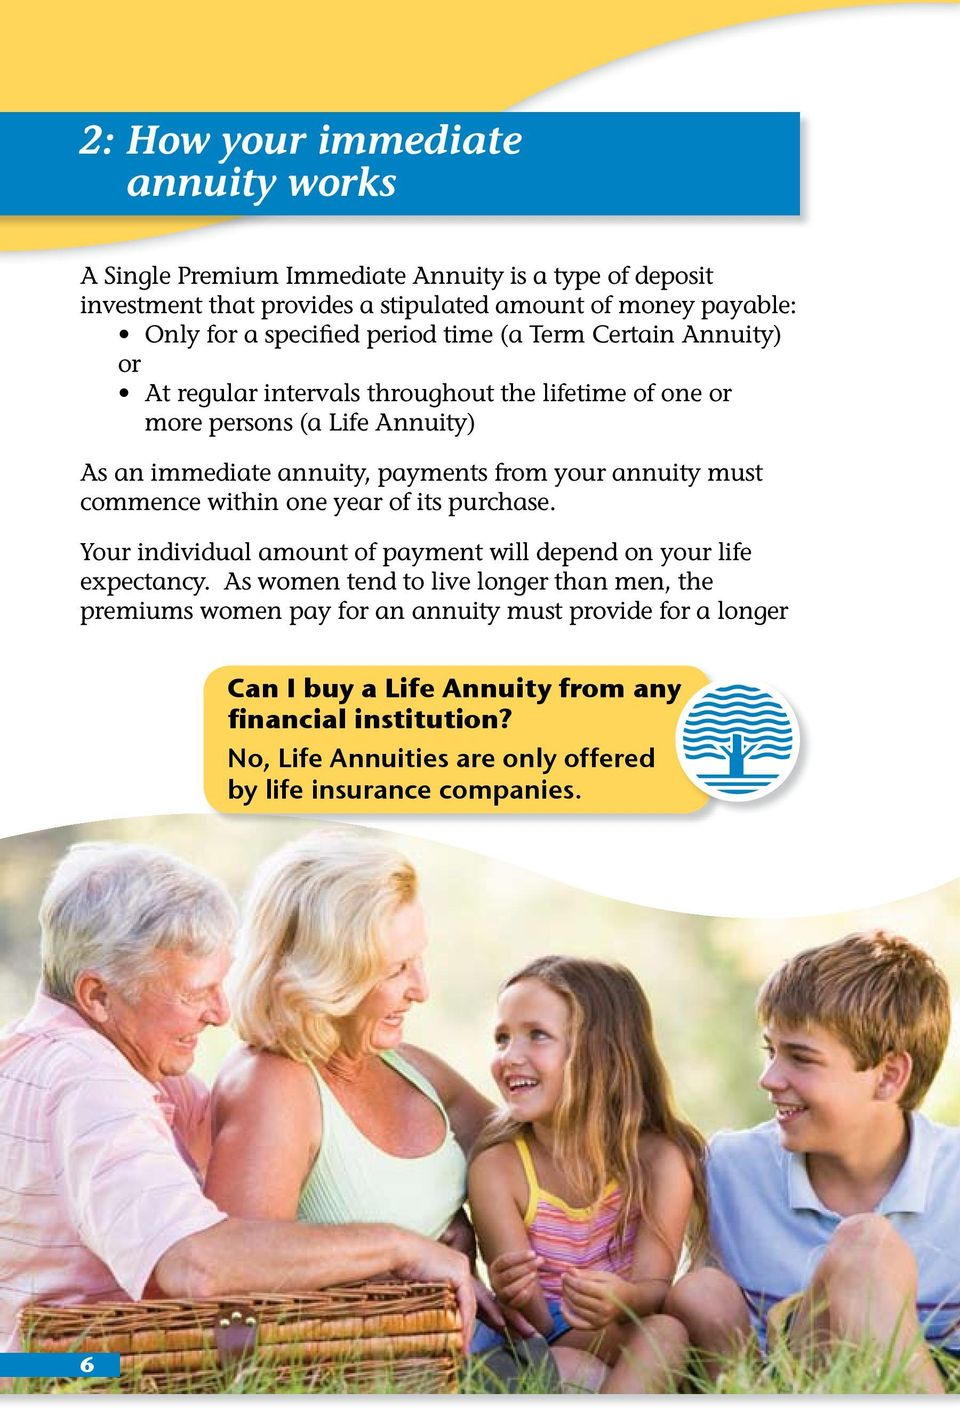 your annuity must commence within one year of its purchase. Your individual amount of payment will depend on your life expectancy.